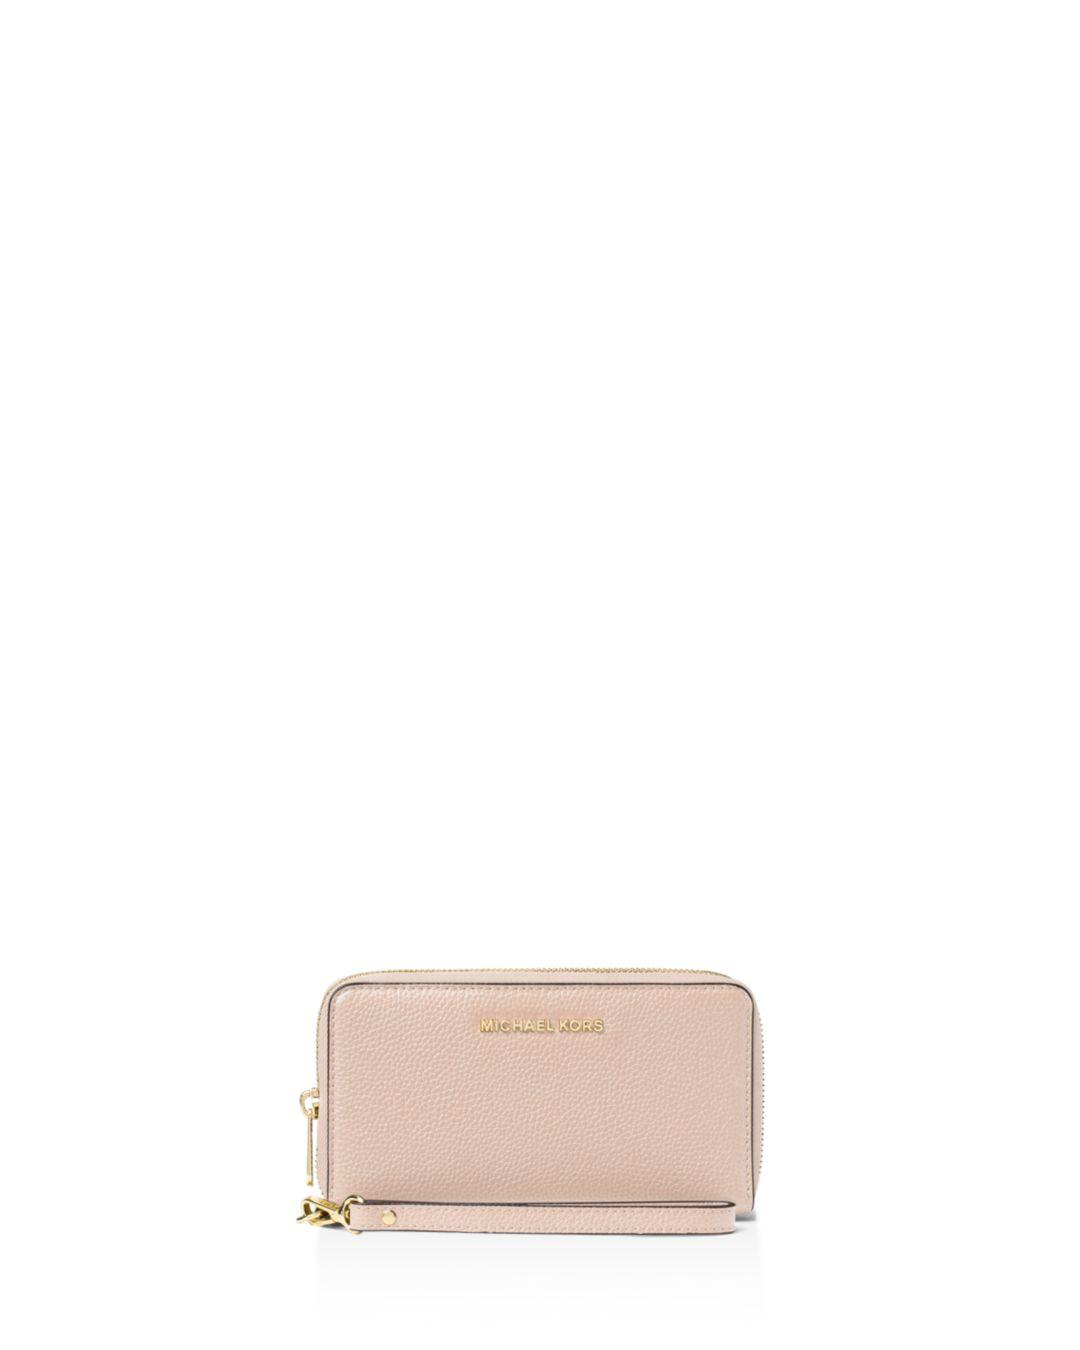 4cedbf64d1fc MICHAEL Michael Kors. Women's Pink Flat Multi-function Large Leather Smartphone  Wristlet